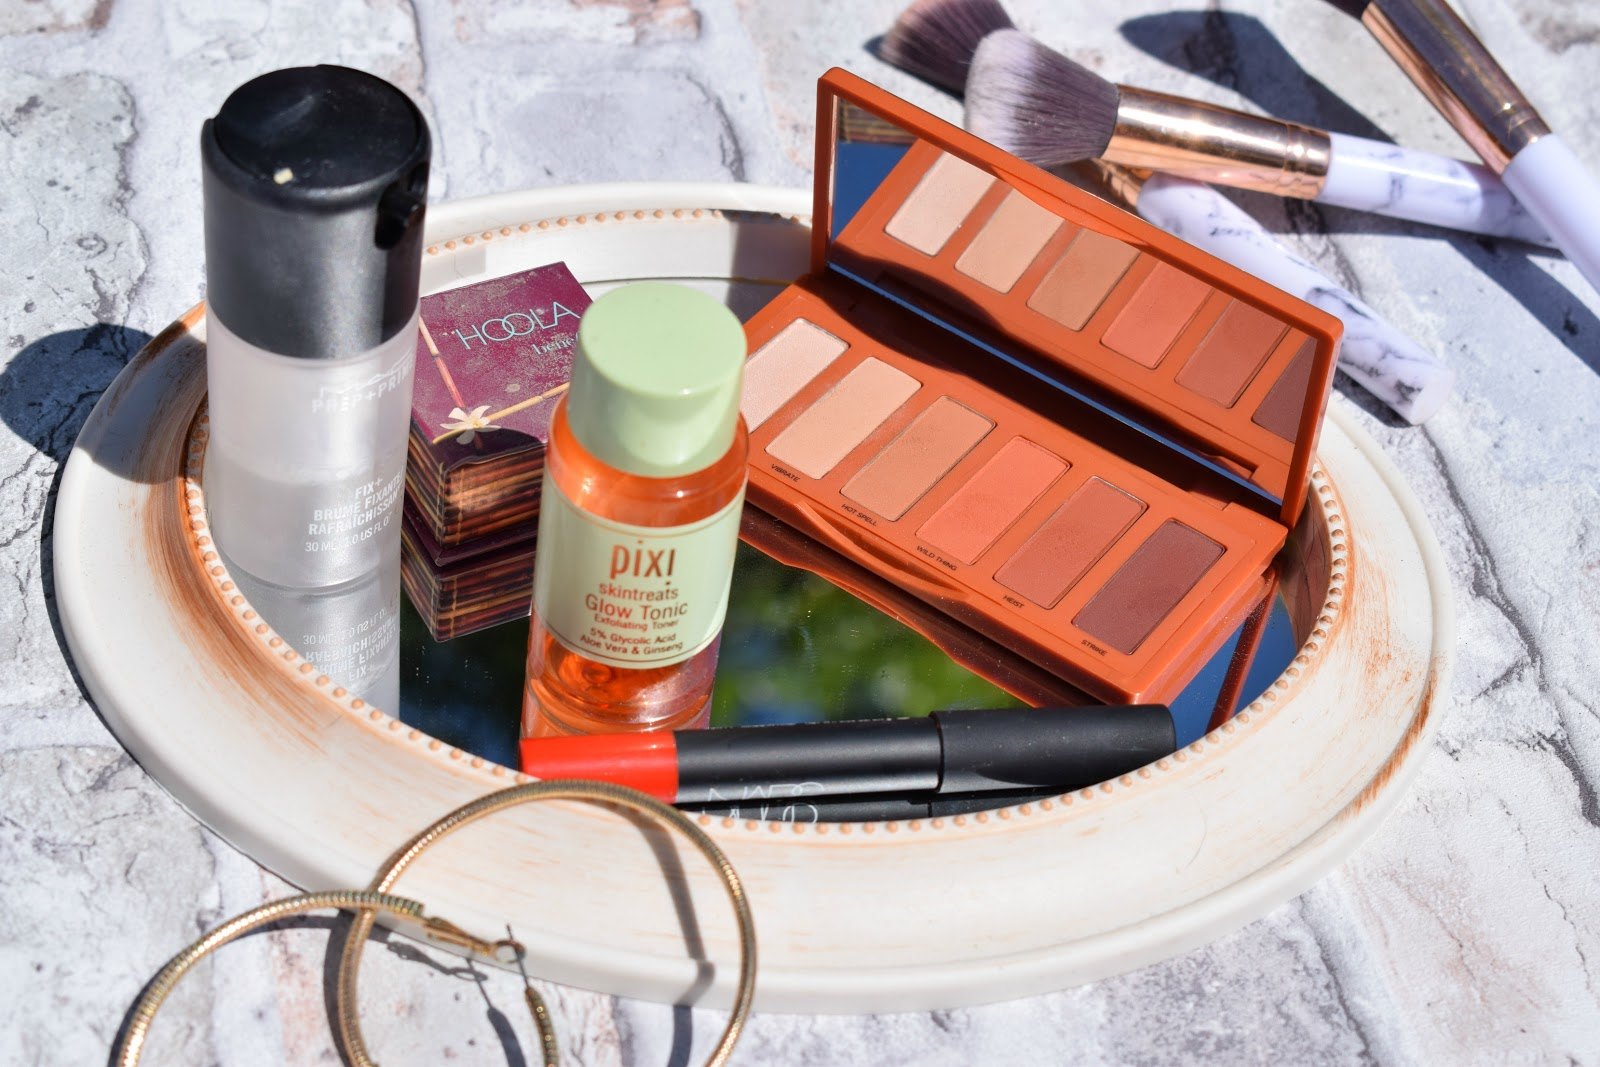 June's beauty favourites